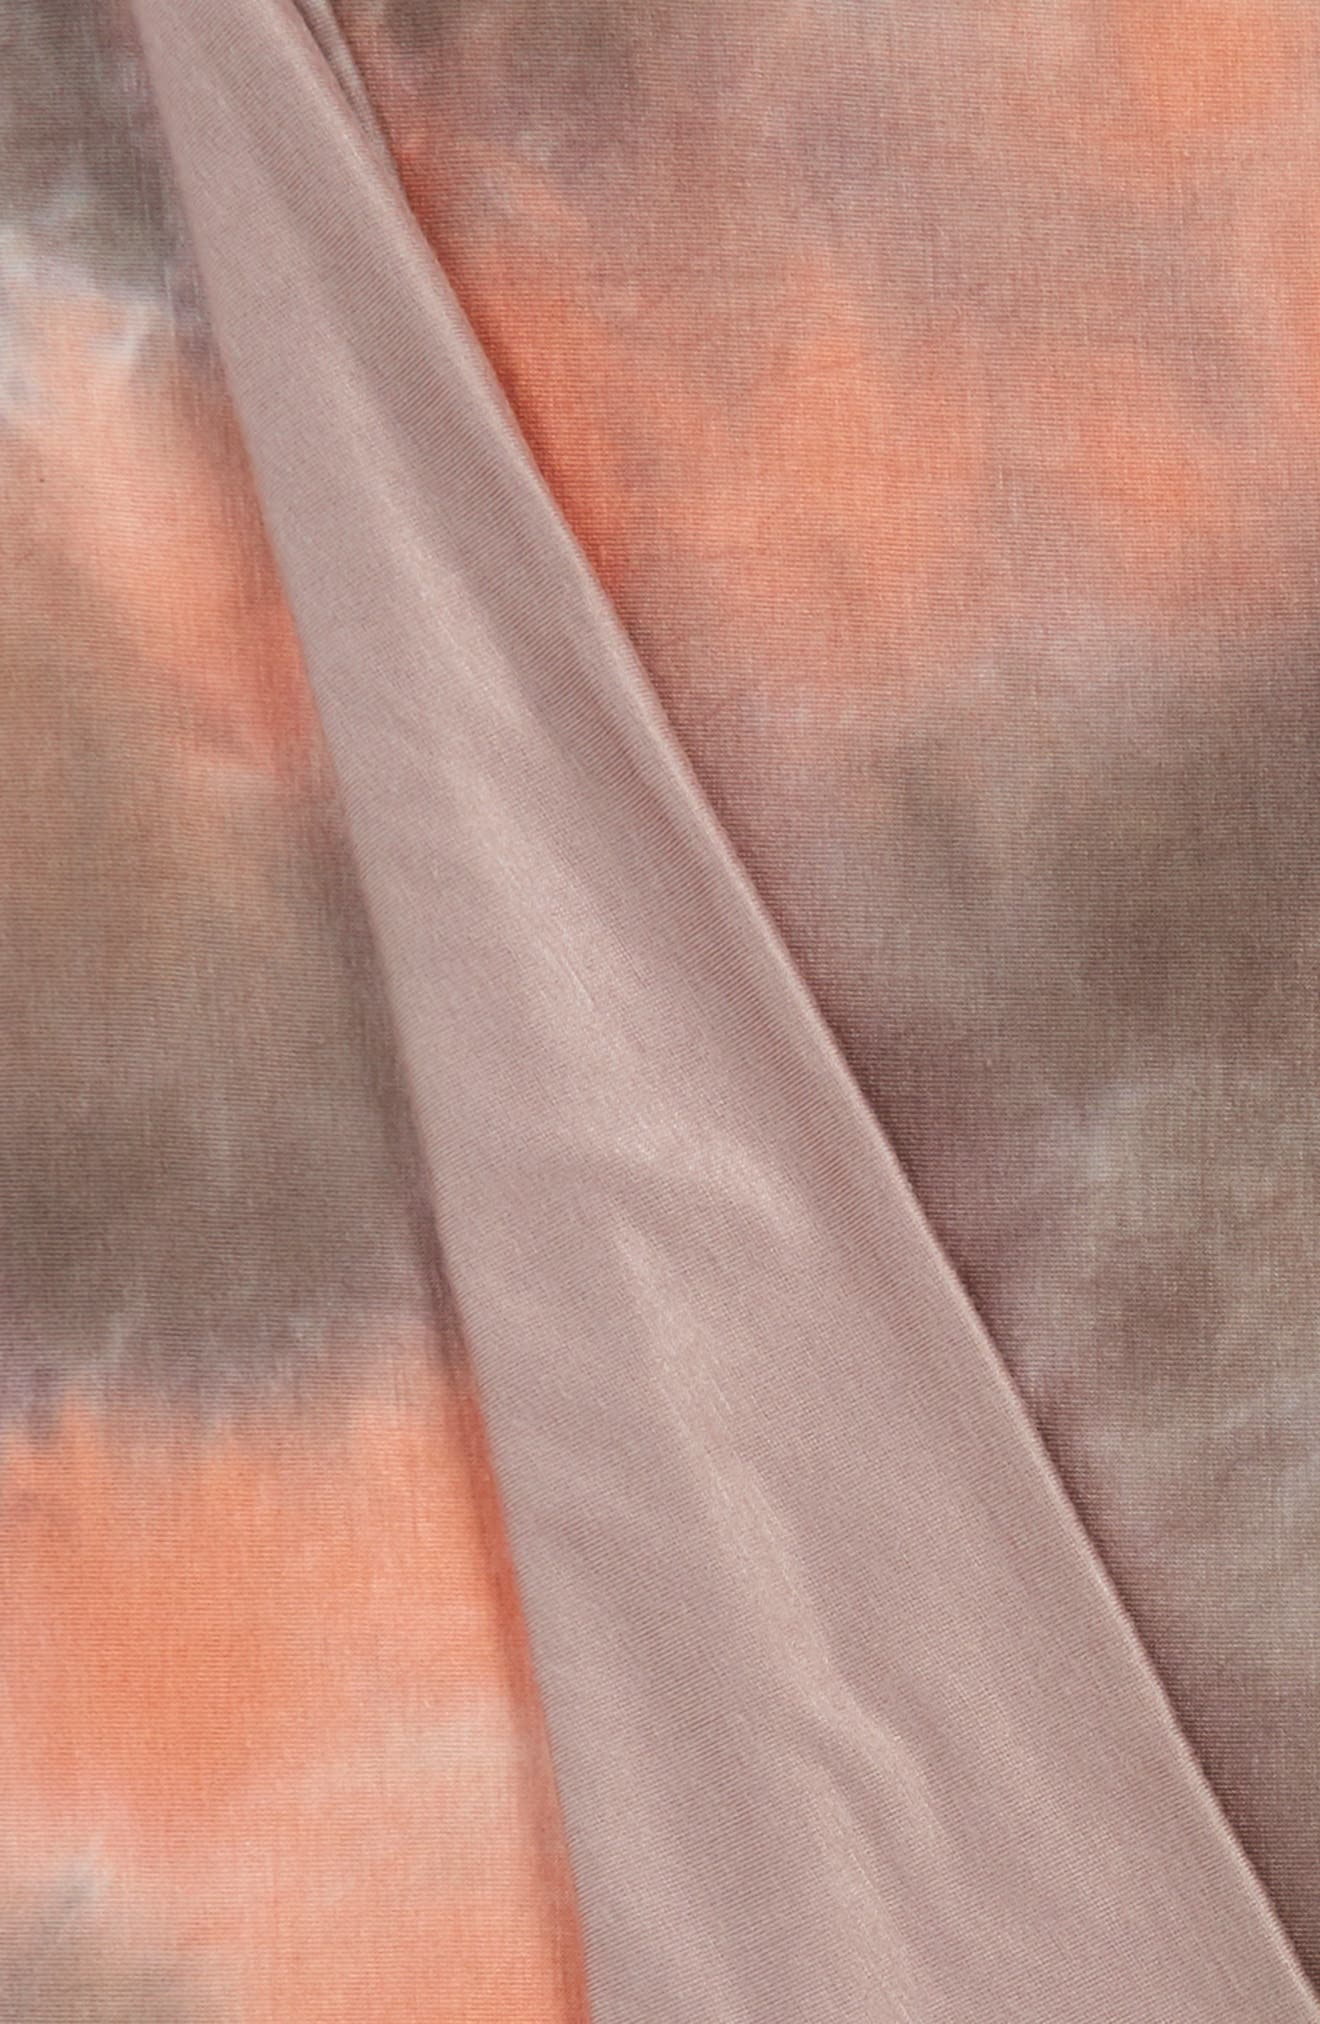 September Marbled Jersey Throw,                             Alternate thumbnail 3, color,                             Coral/ Multi